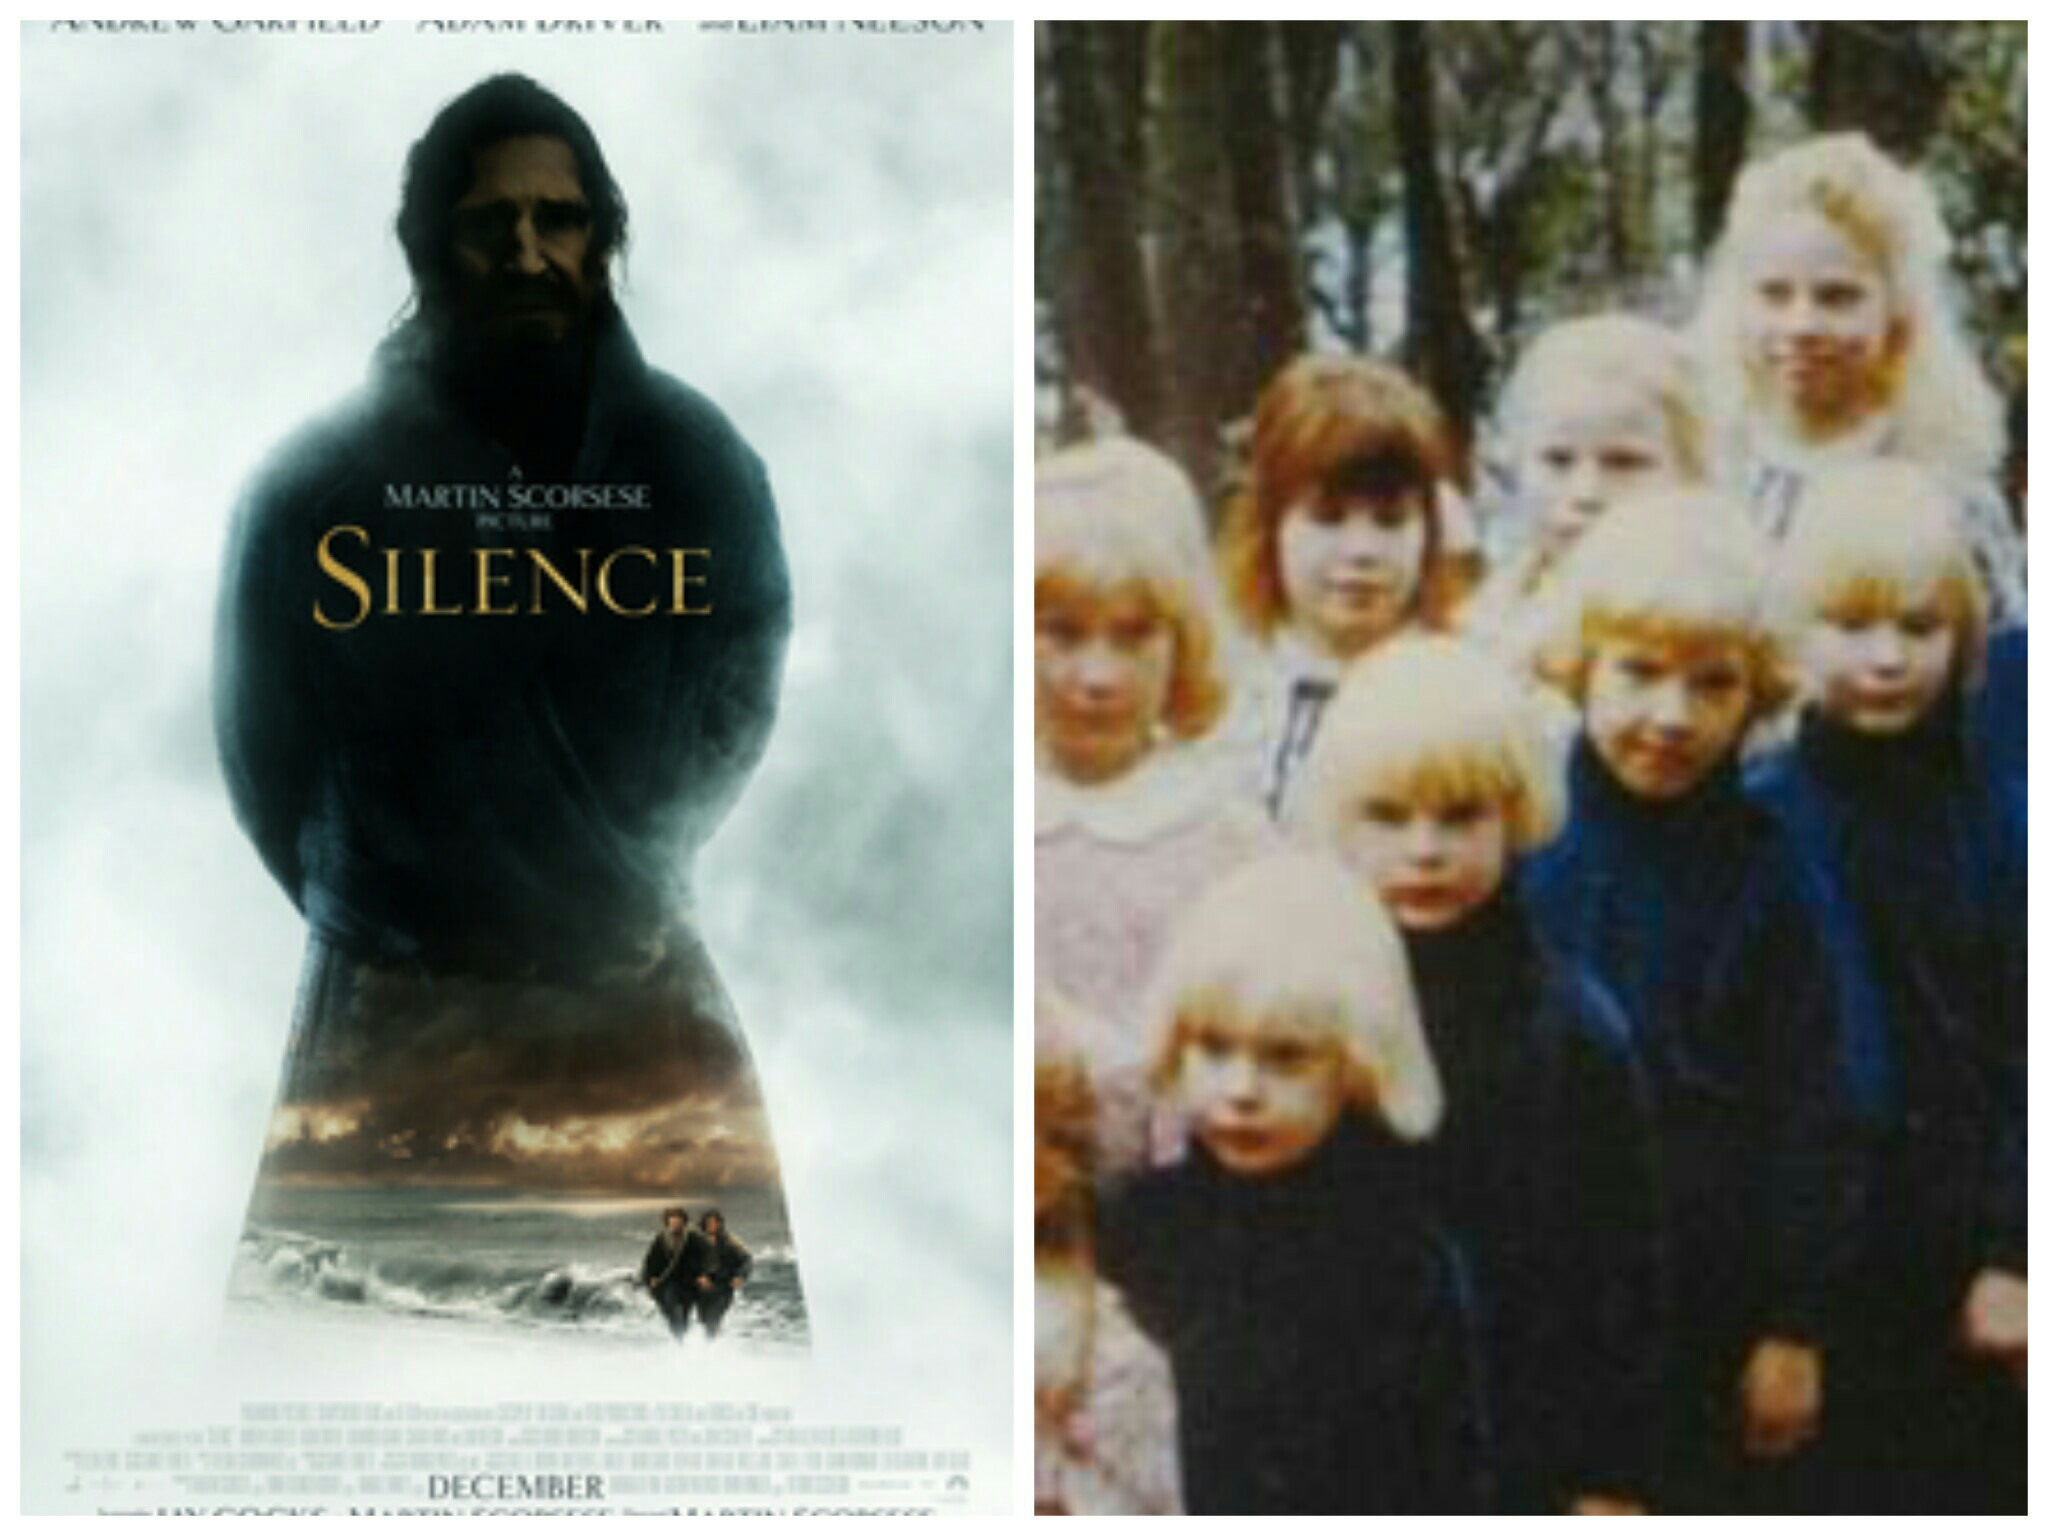 Posters for Silence and The Family